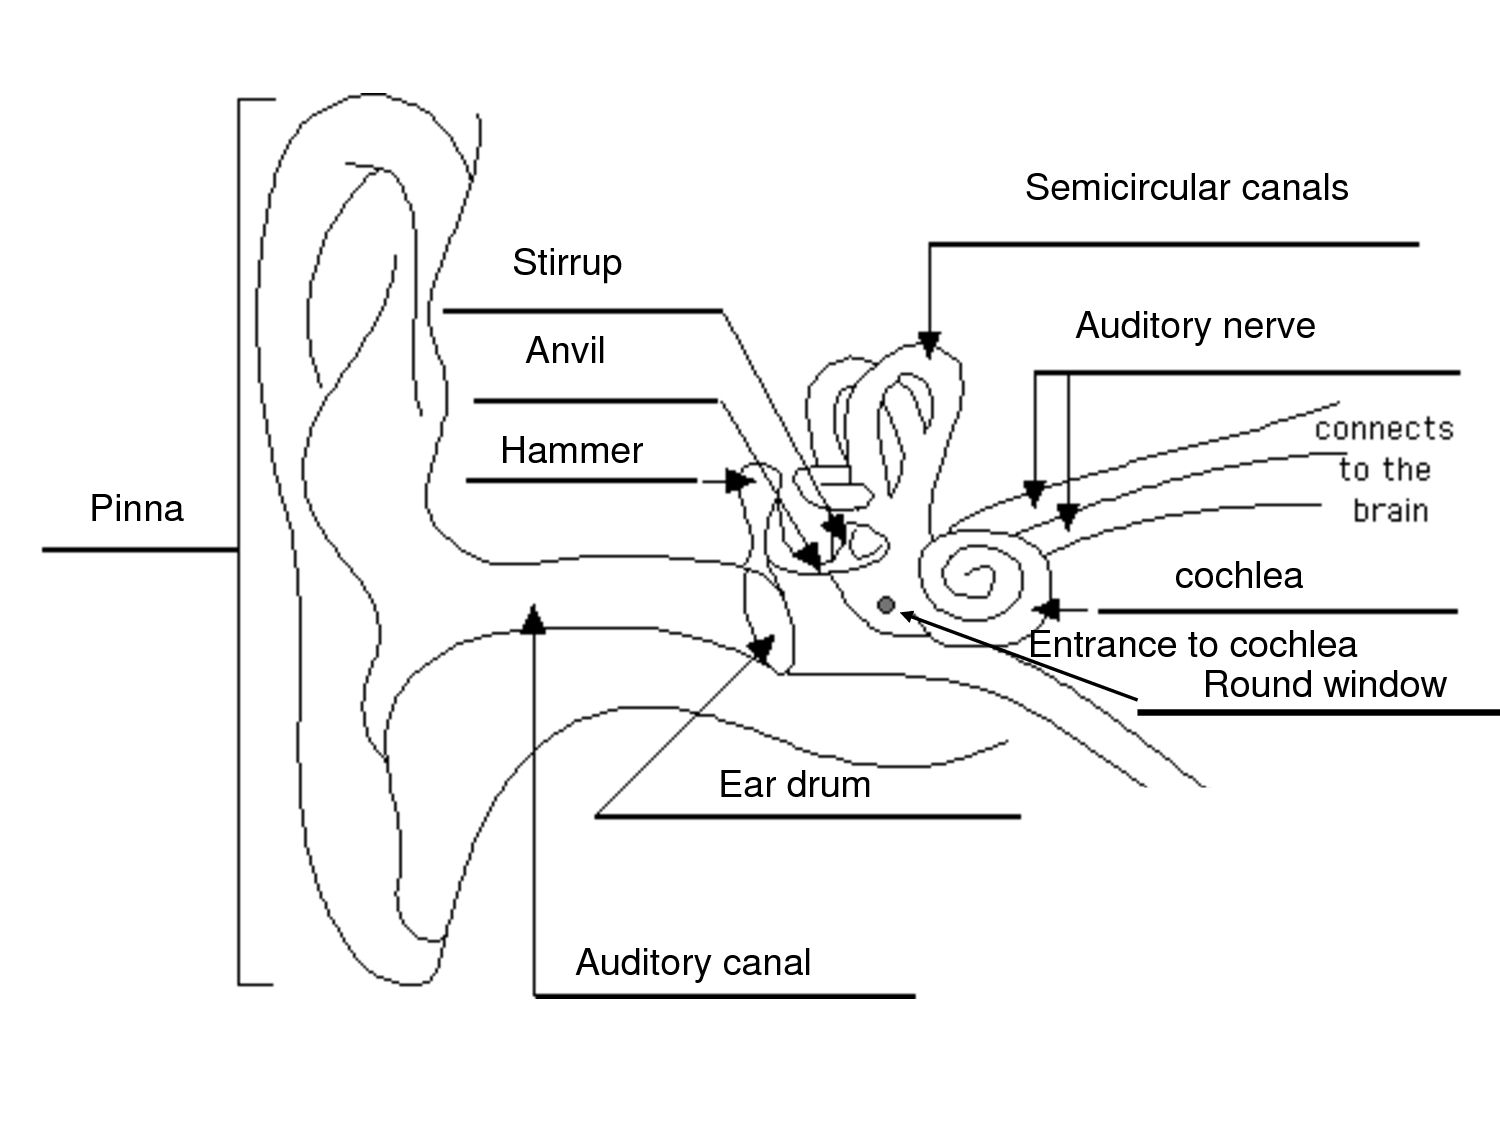 image result for ear structure without label sound topic hairs ear diagram labeled image result for [ 1500 x 1125 Pixel ]